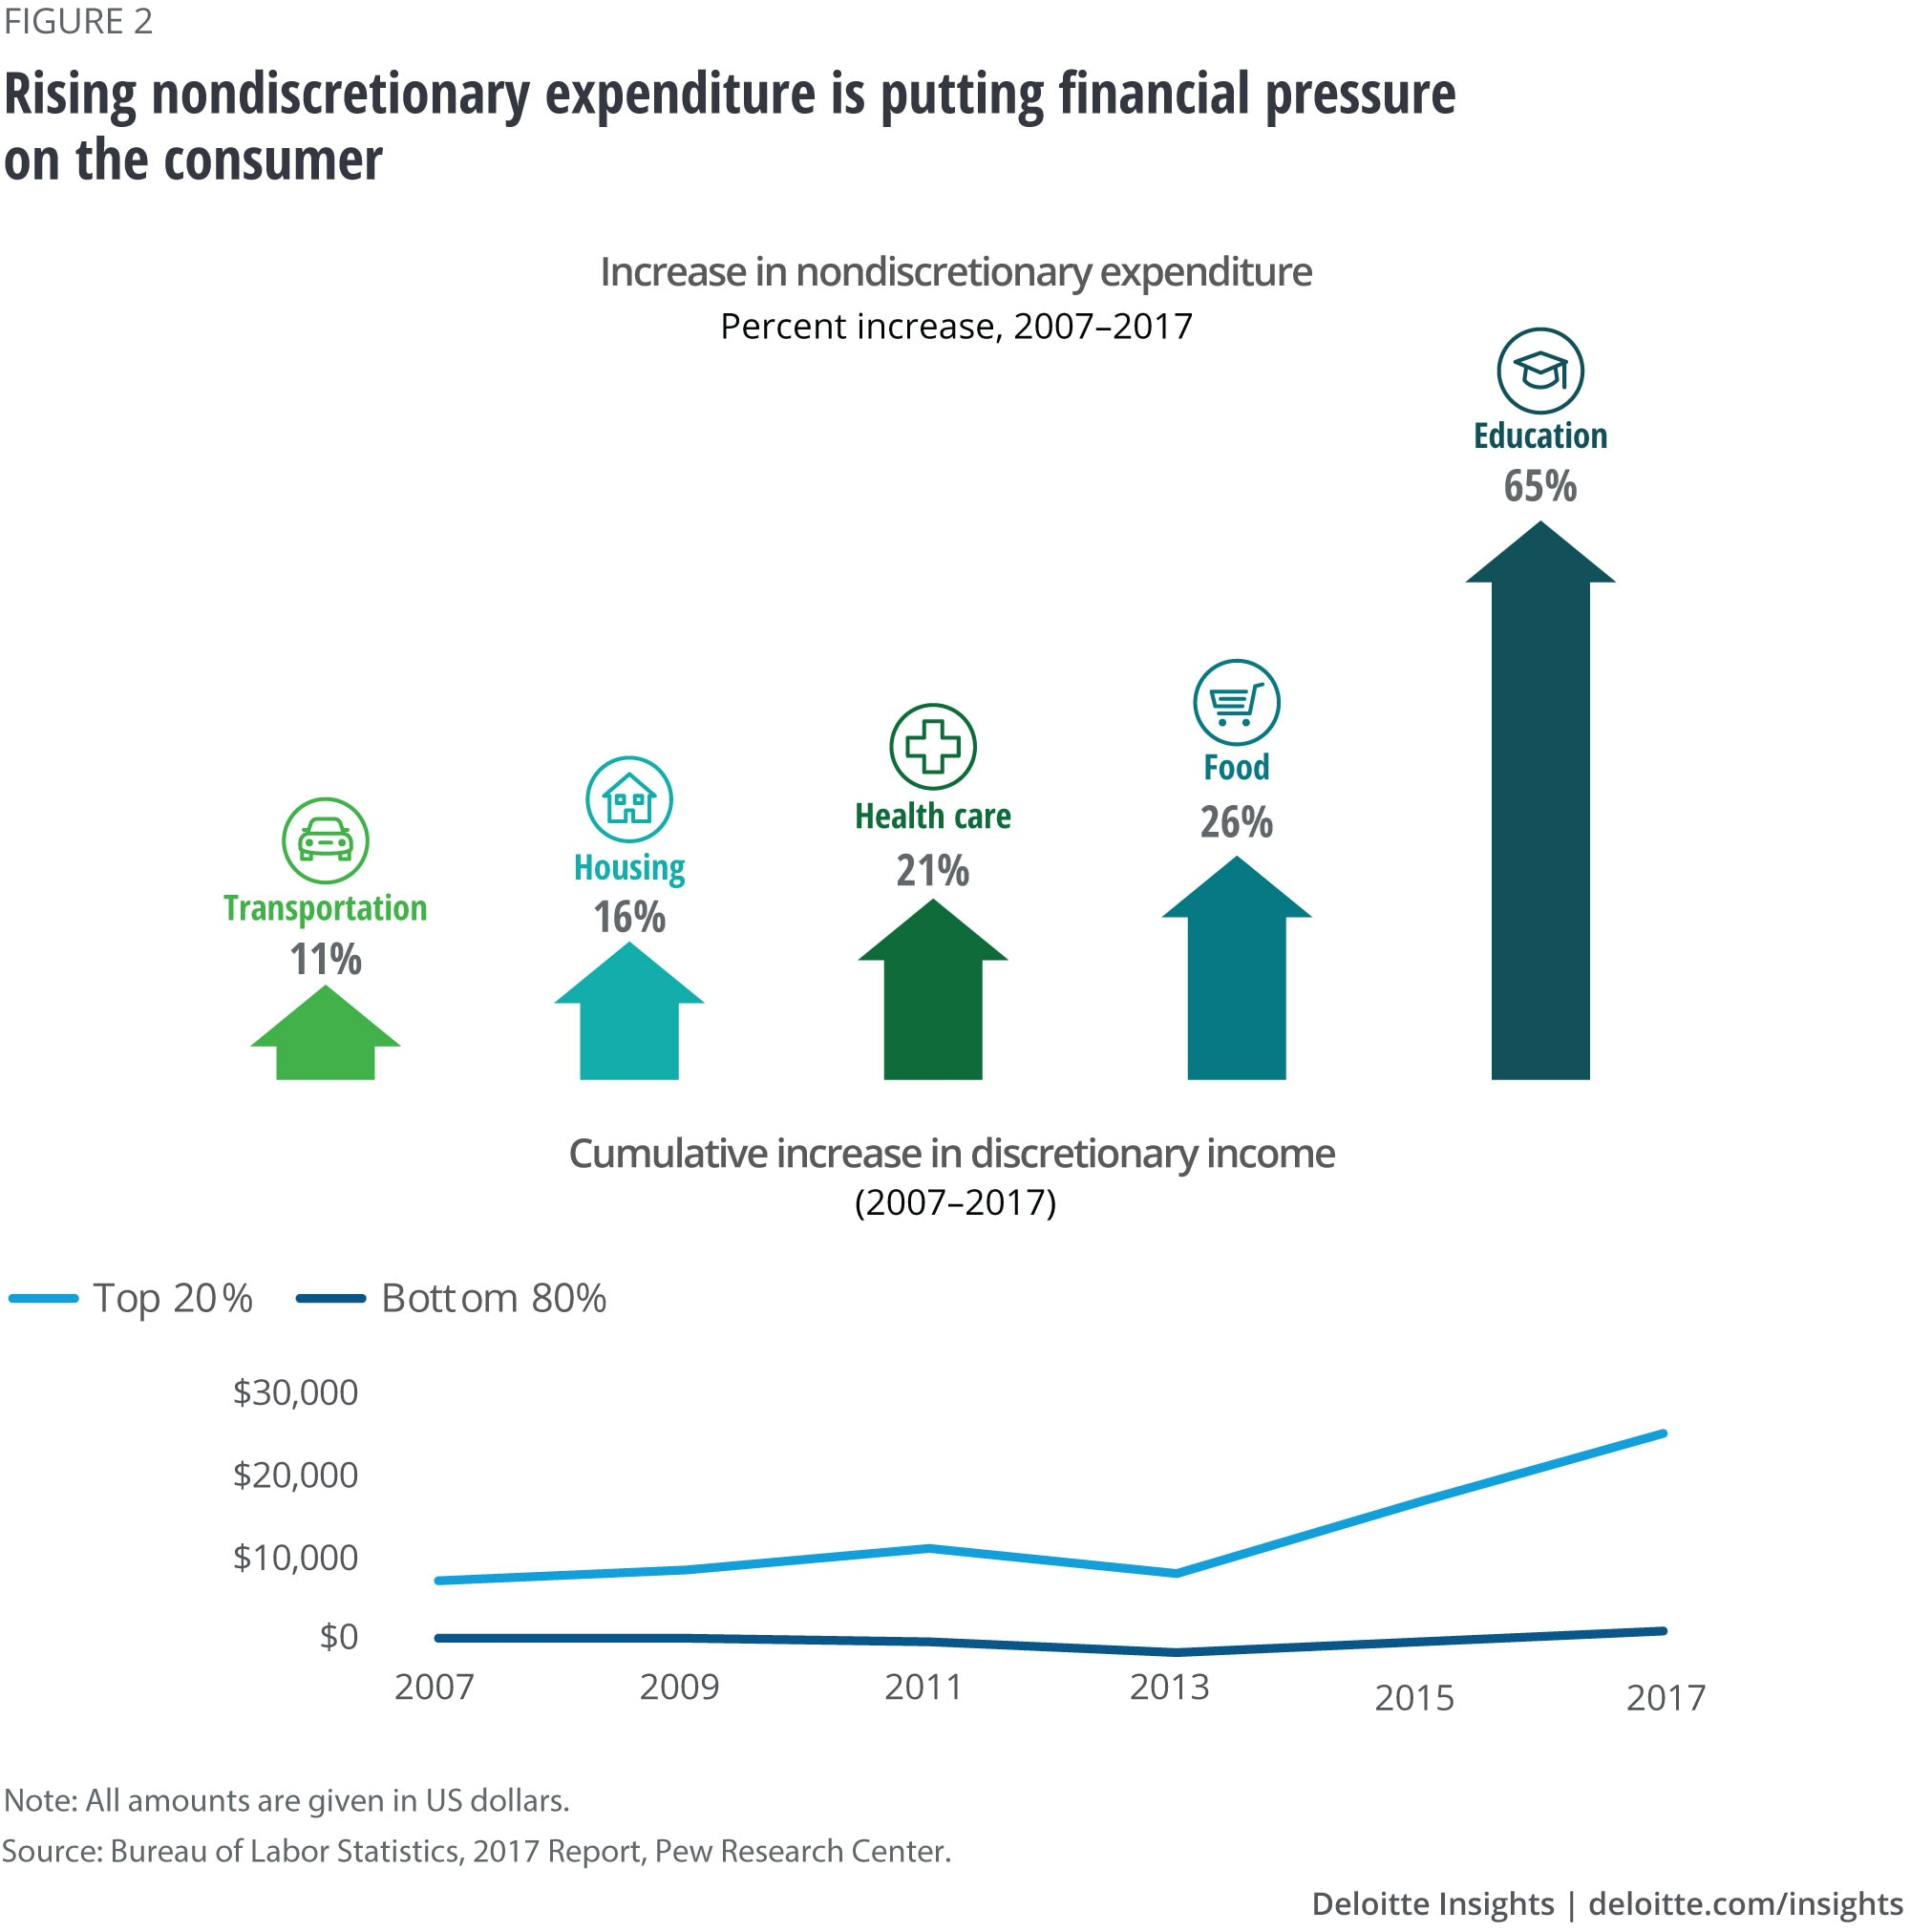 Rising nondiscretionary expenditure is putting financial pressure on the consumer